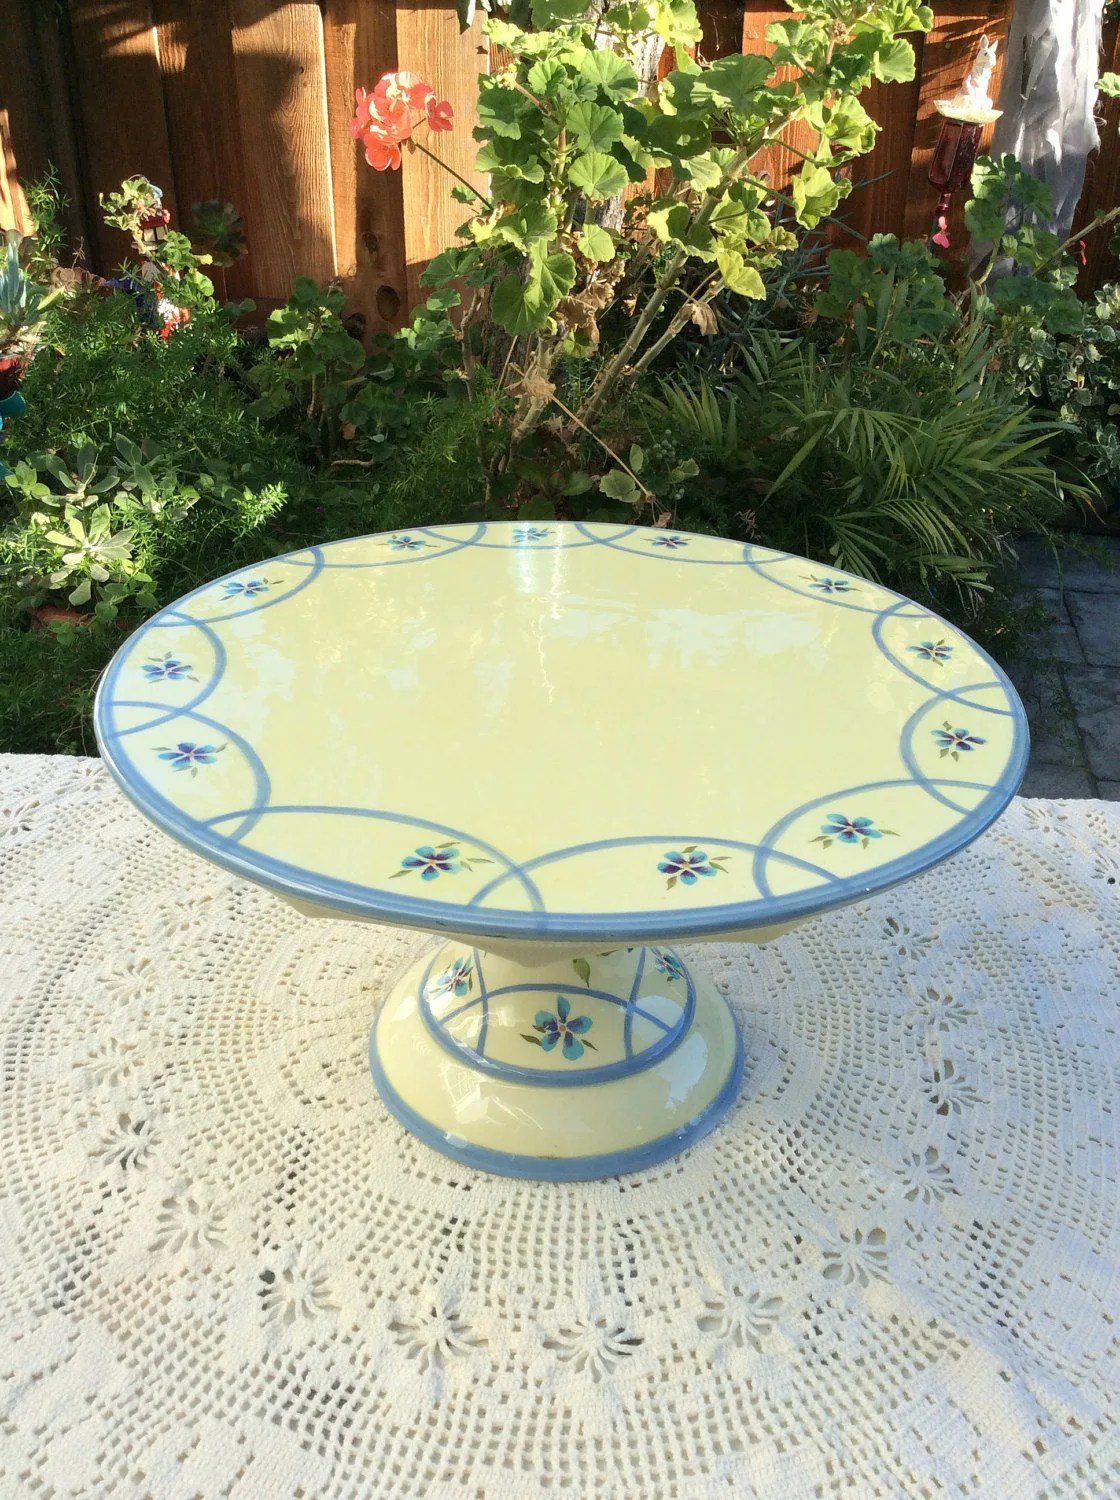 14 Capriware Cake Stand Pedestal Cake Plate Stand